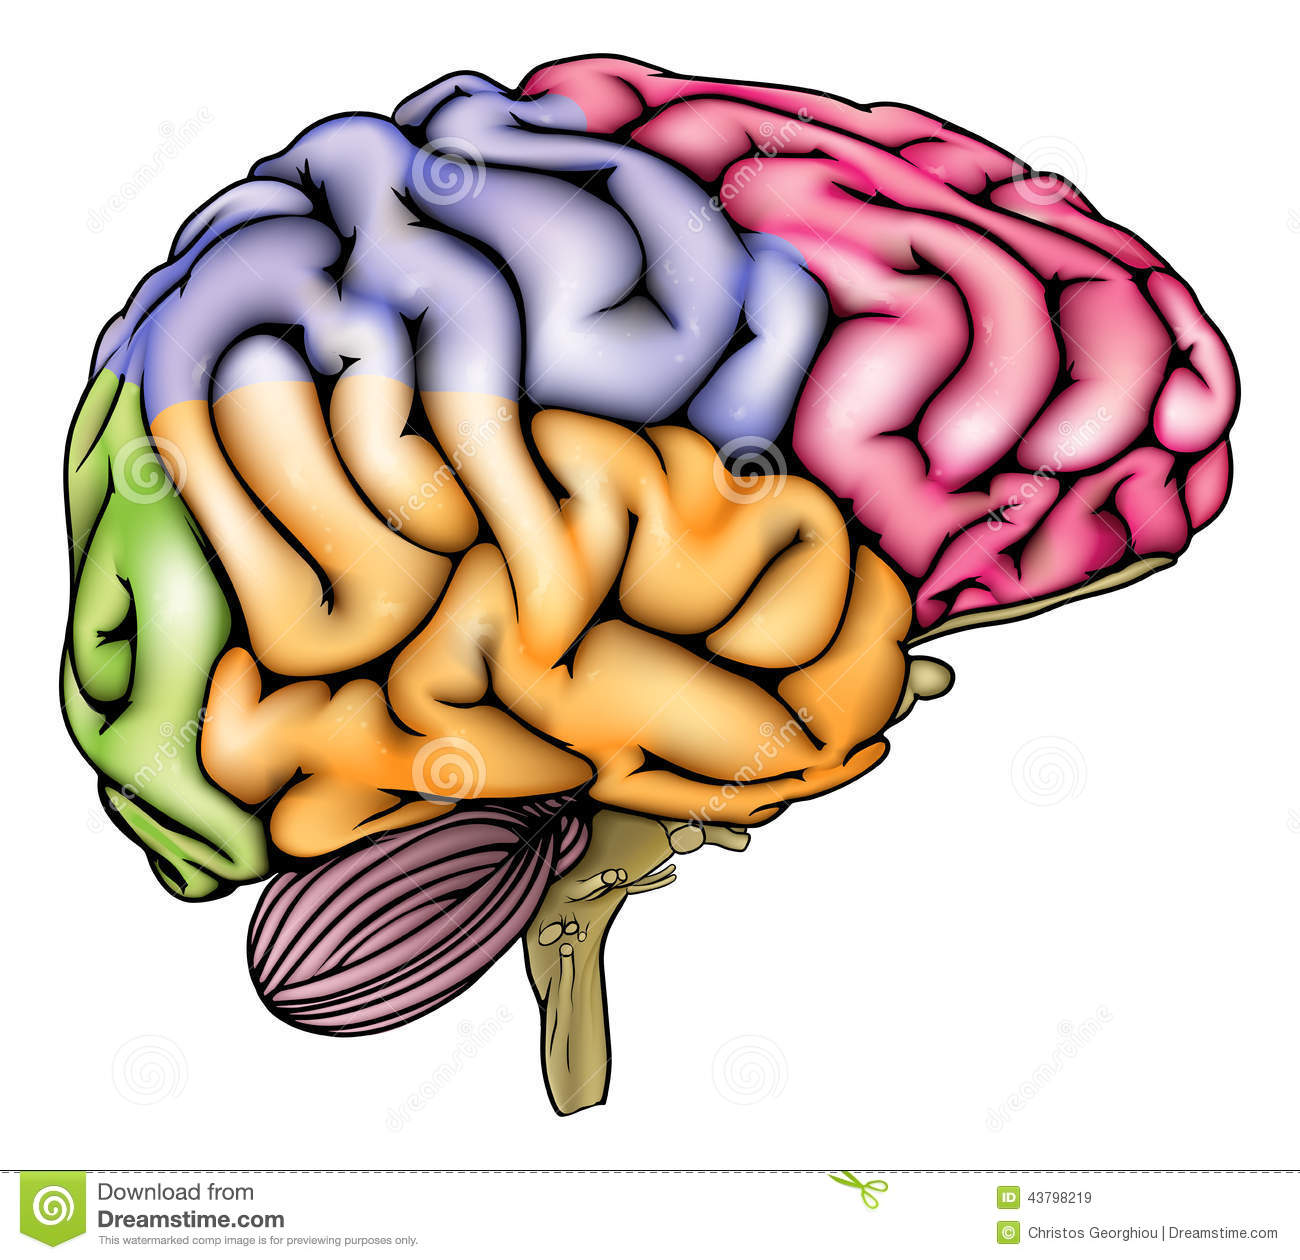 Human Brain Anatomy Sectioned Stock Vector - Illustration of ...